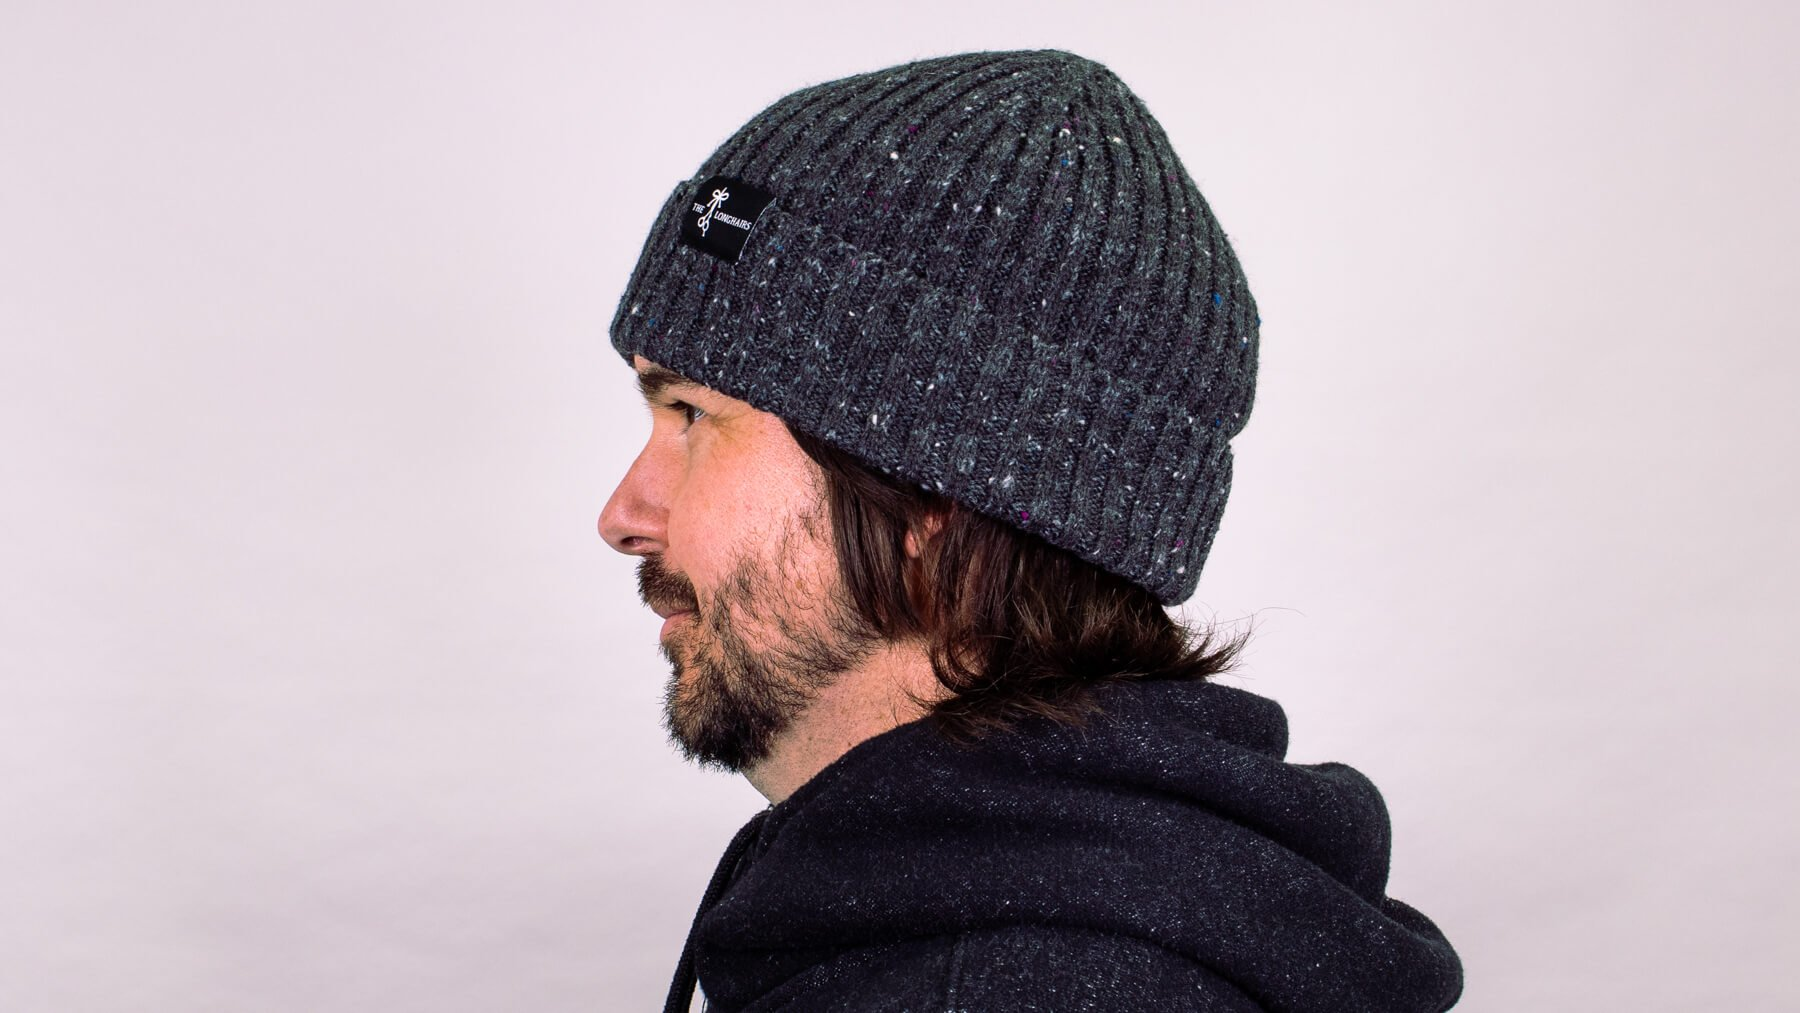 Beanie with awkward stage hairstyle side profile view